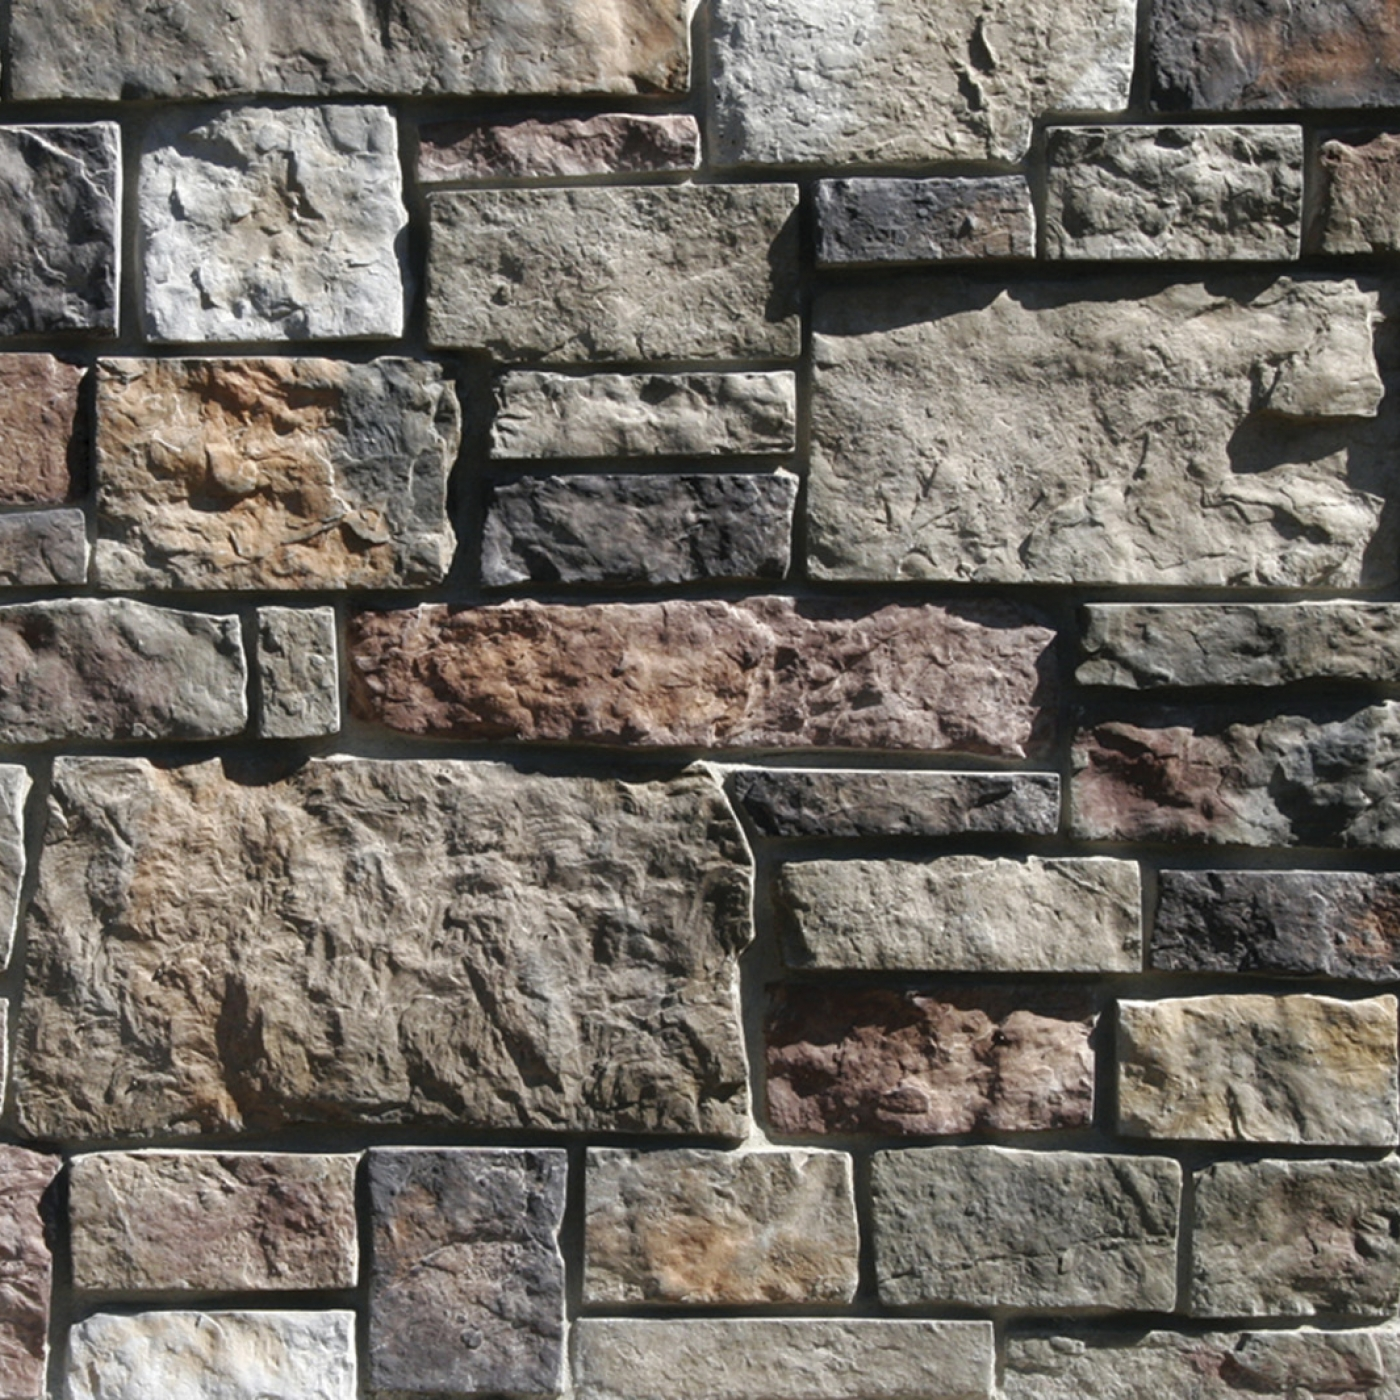 Bucks County Hackett Cut Stone Stone Veneer from Environmental StoneWorks